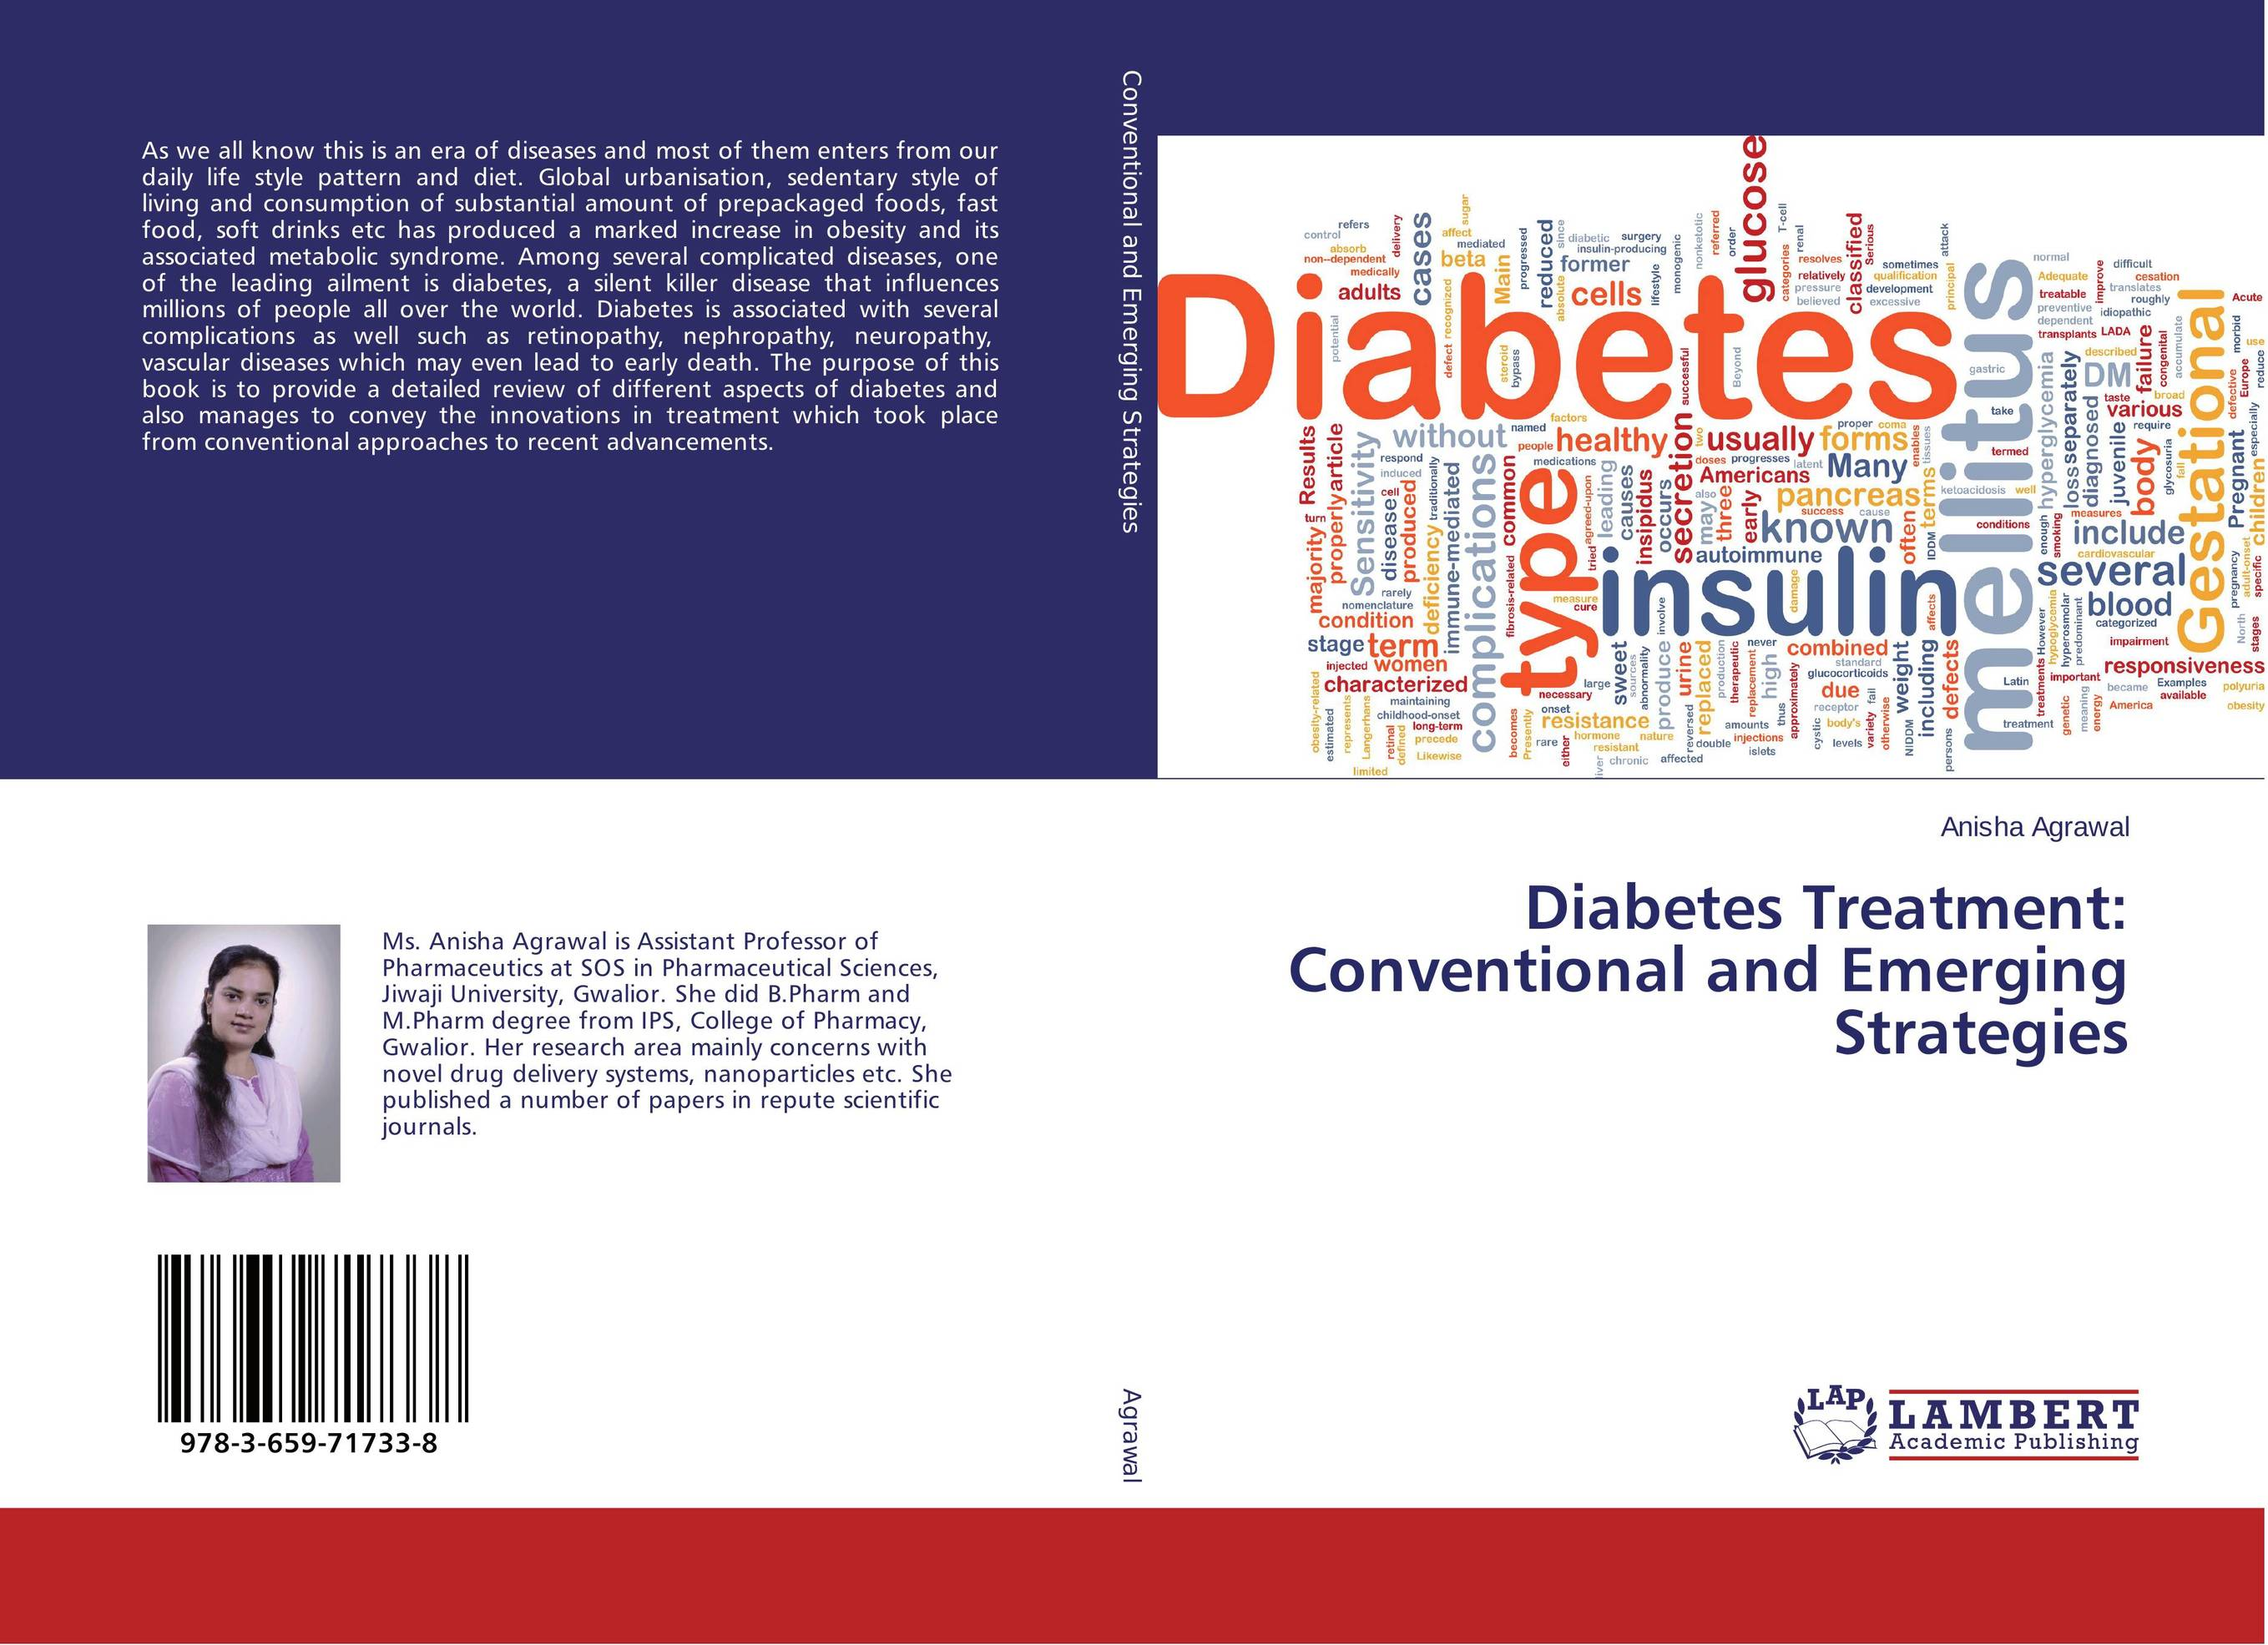 Diabetes Treatment: Conventional and Emerging Strategies metabolic benefits of diet and exercise on type 2 diabetes